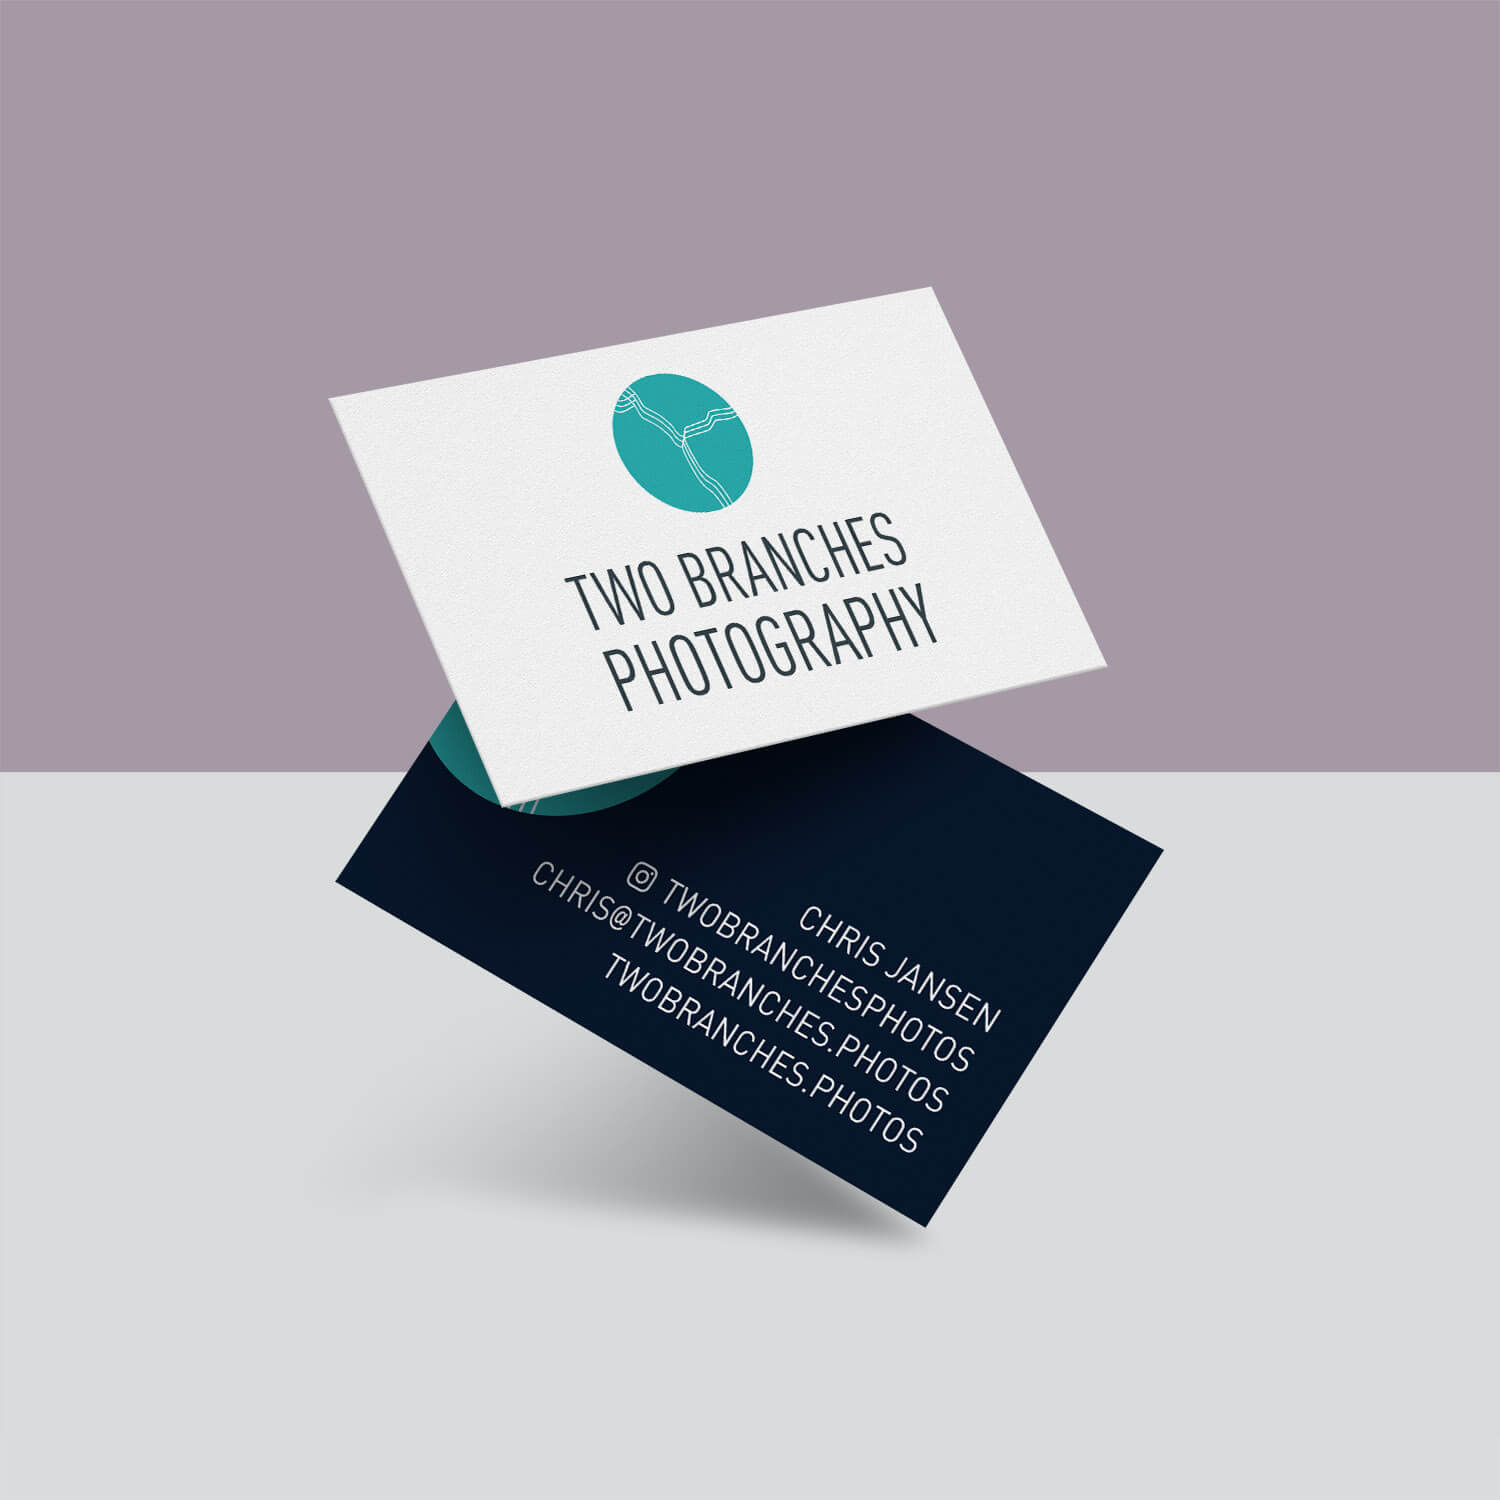 Floating Business card mockup for Two Branches Photography